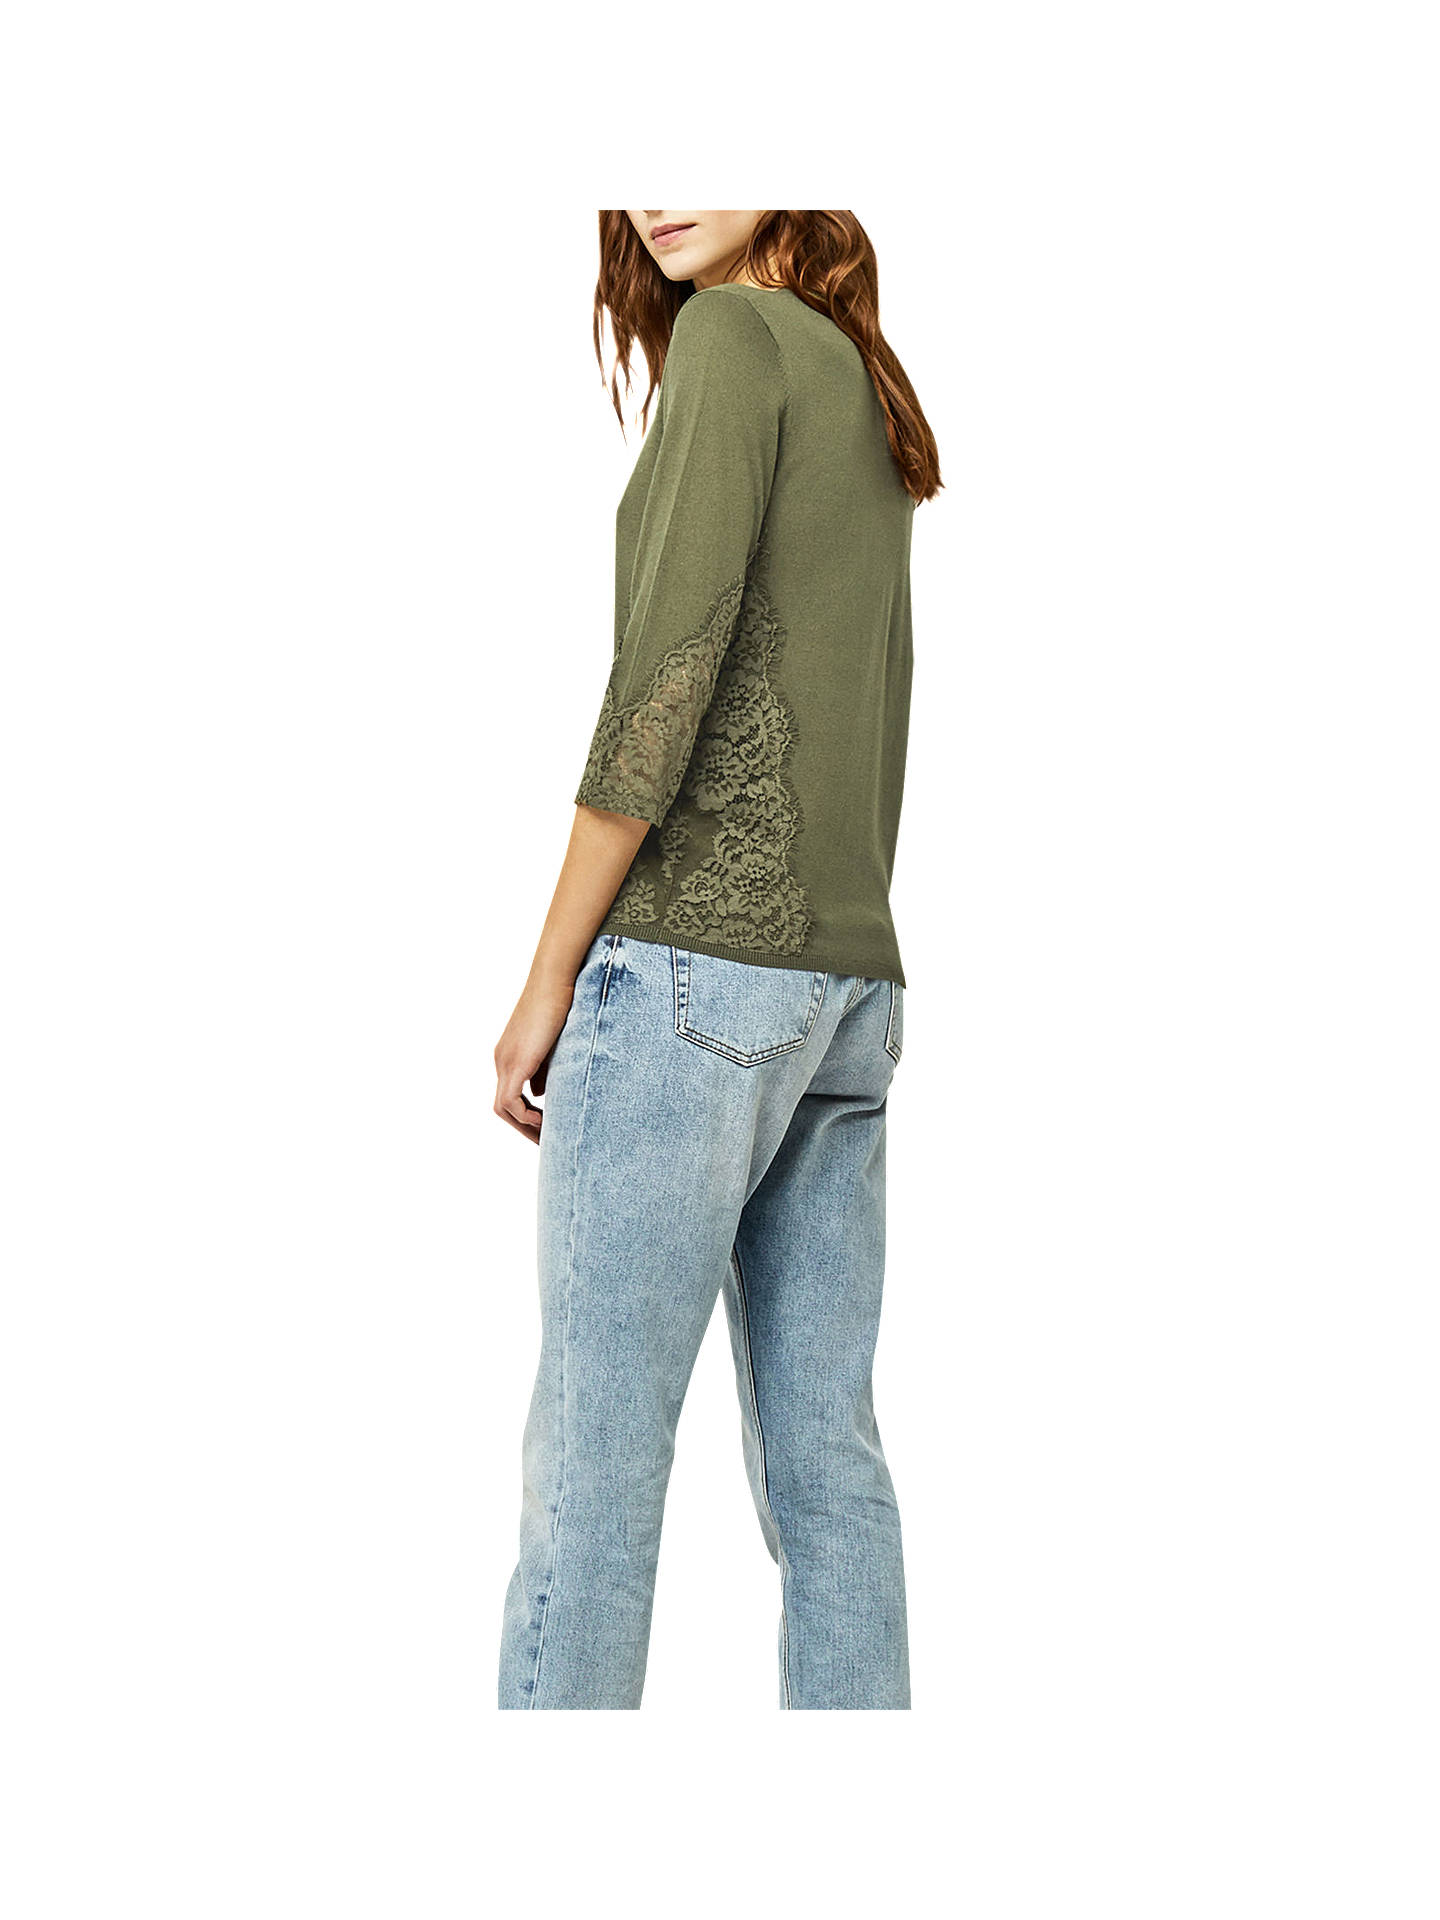 BuyWarehouse Lace Side Jumper, Khaki, 6 Online at johnlewis.com